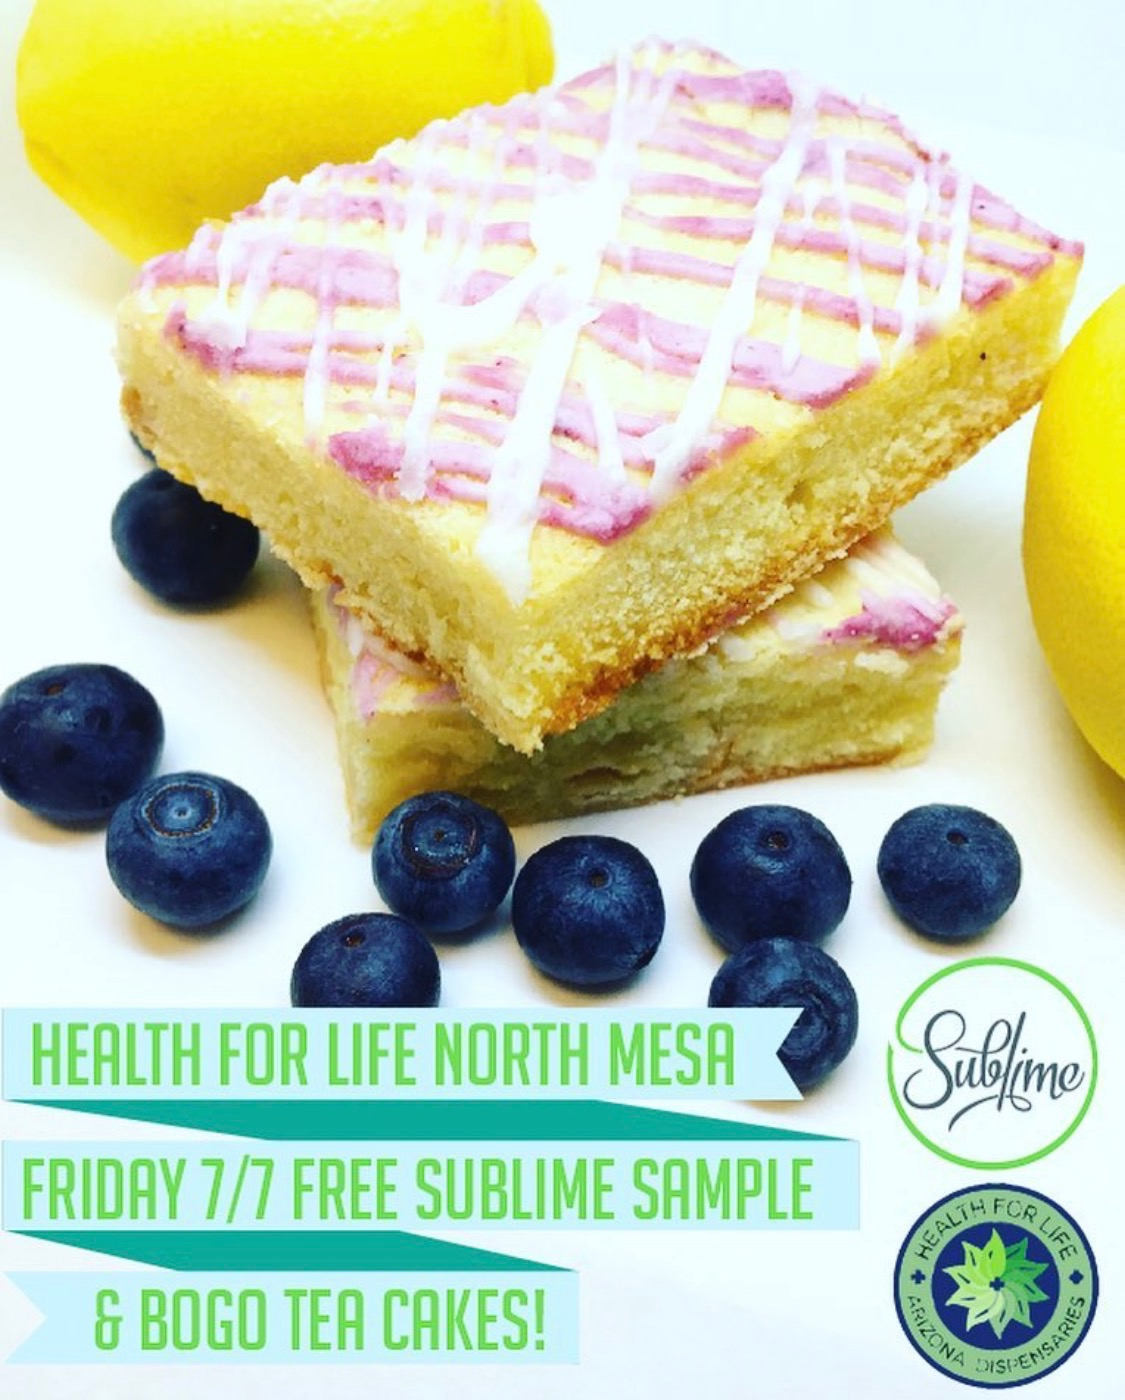 sublime patient appreciation day at health for life north mesa